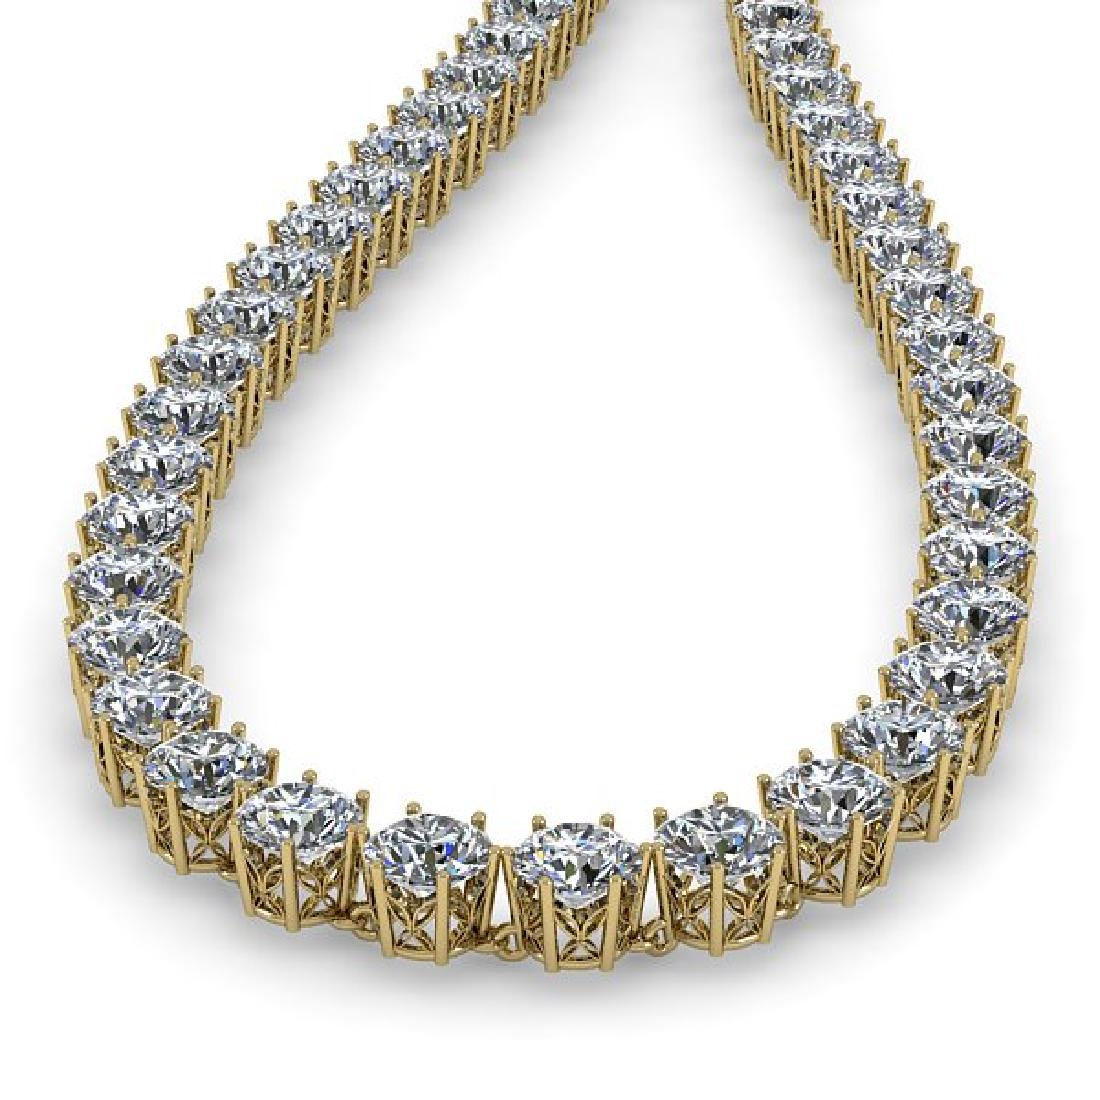 29 CTW SI Certified Diamond Necklace 18K Yellow Gold - 2